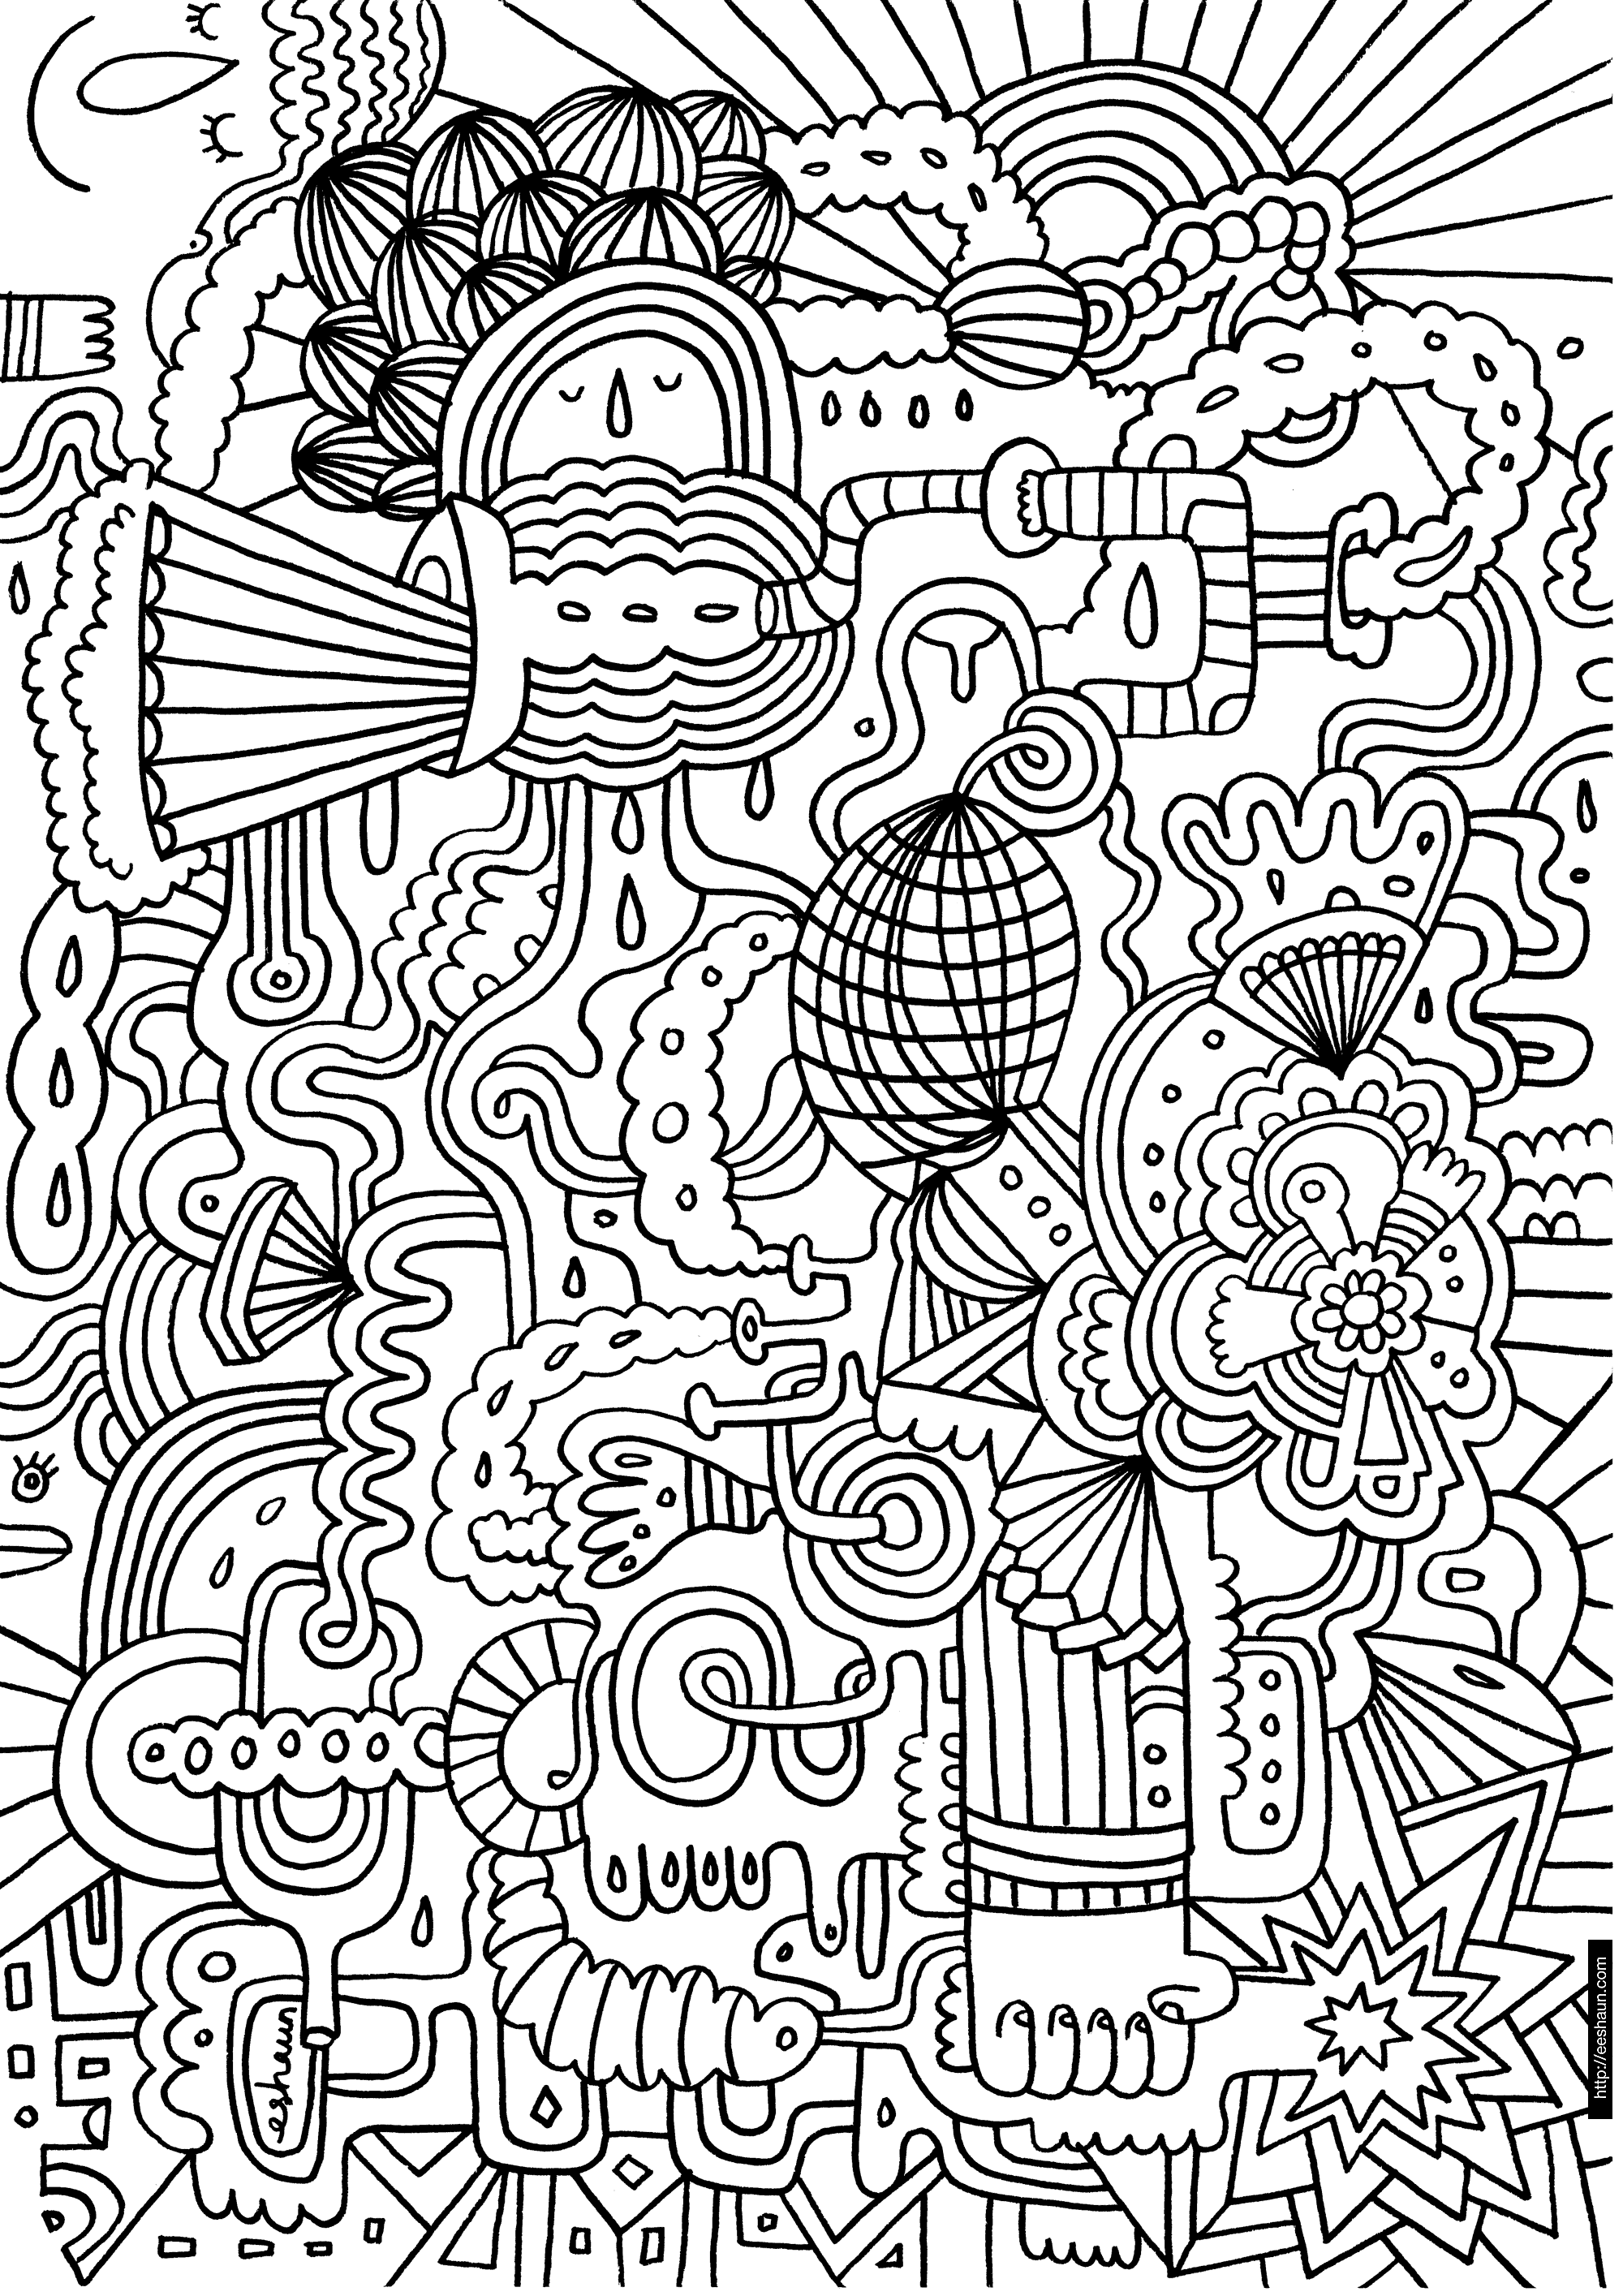 free detailed coloring pages detailed coloring pages to download and print for free free detailed pages coloring